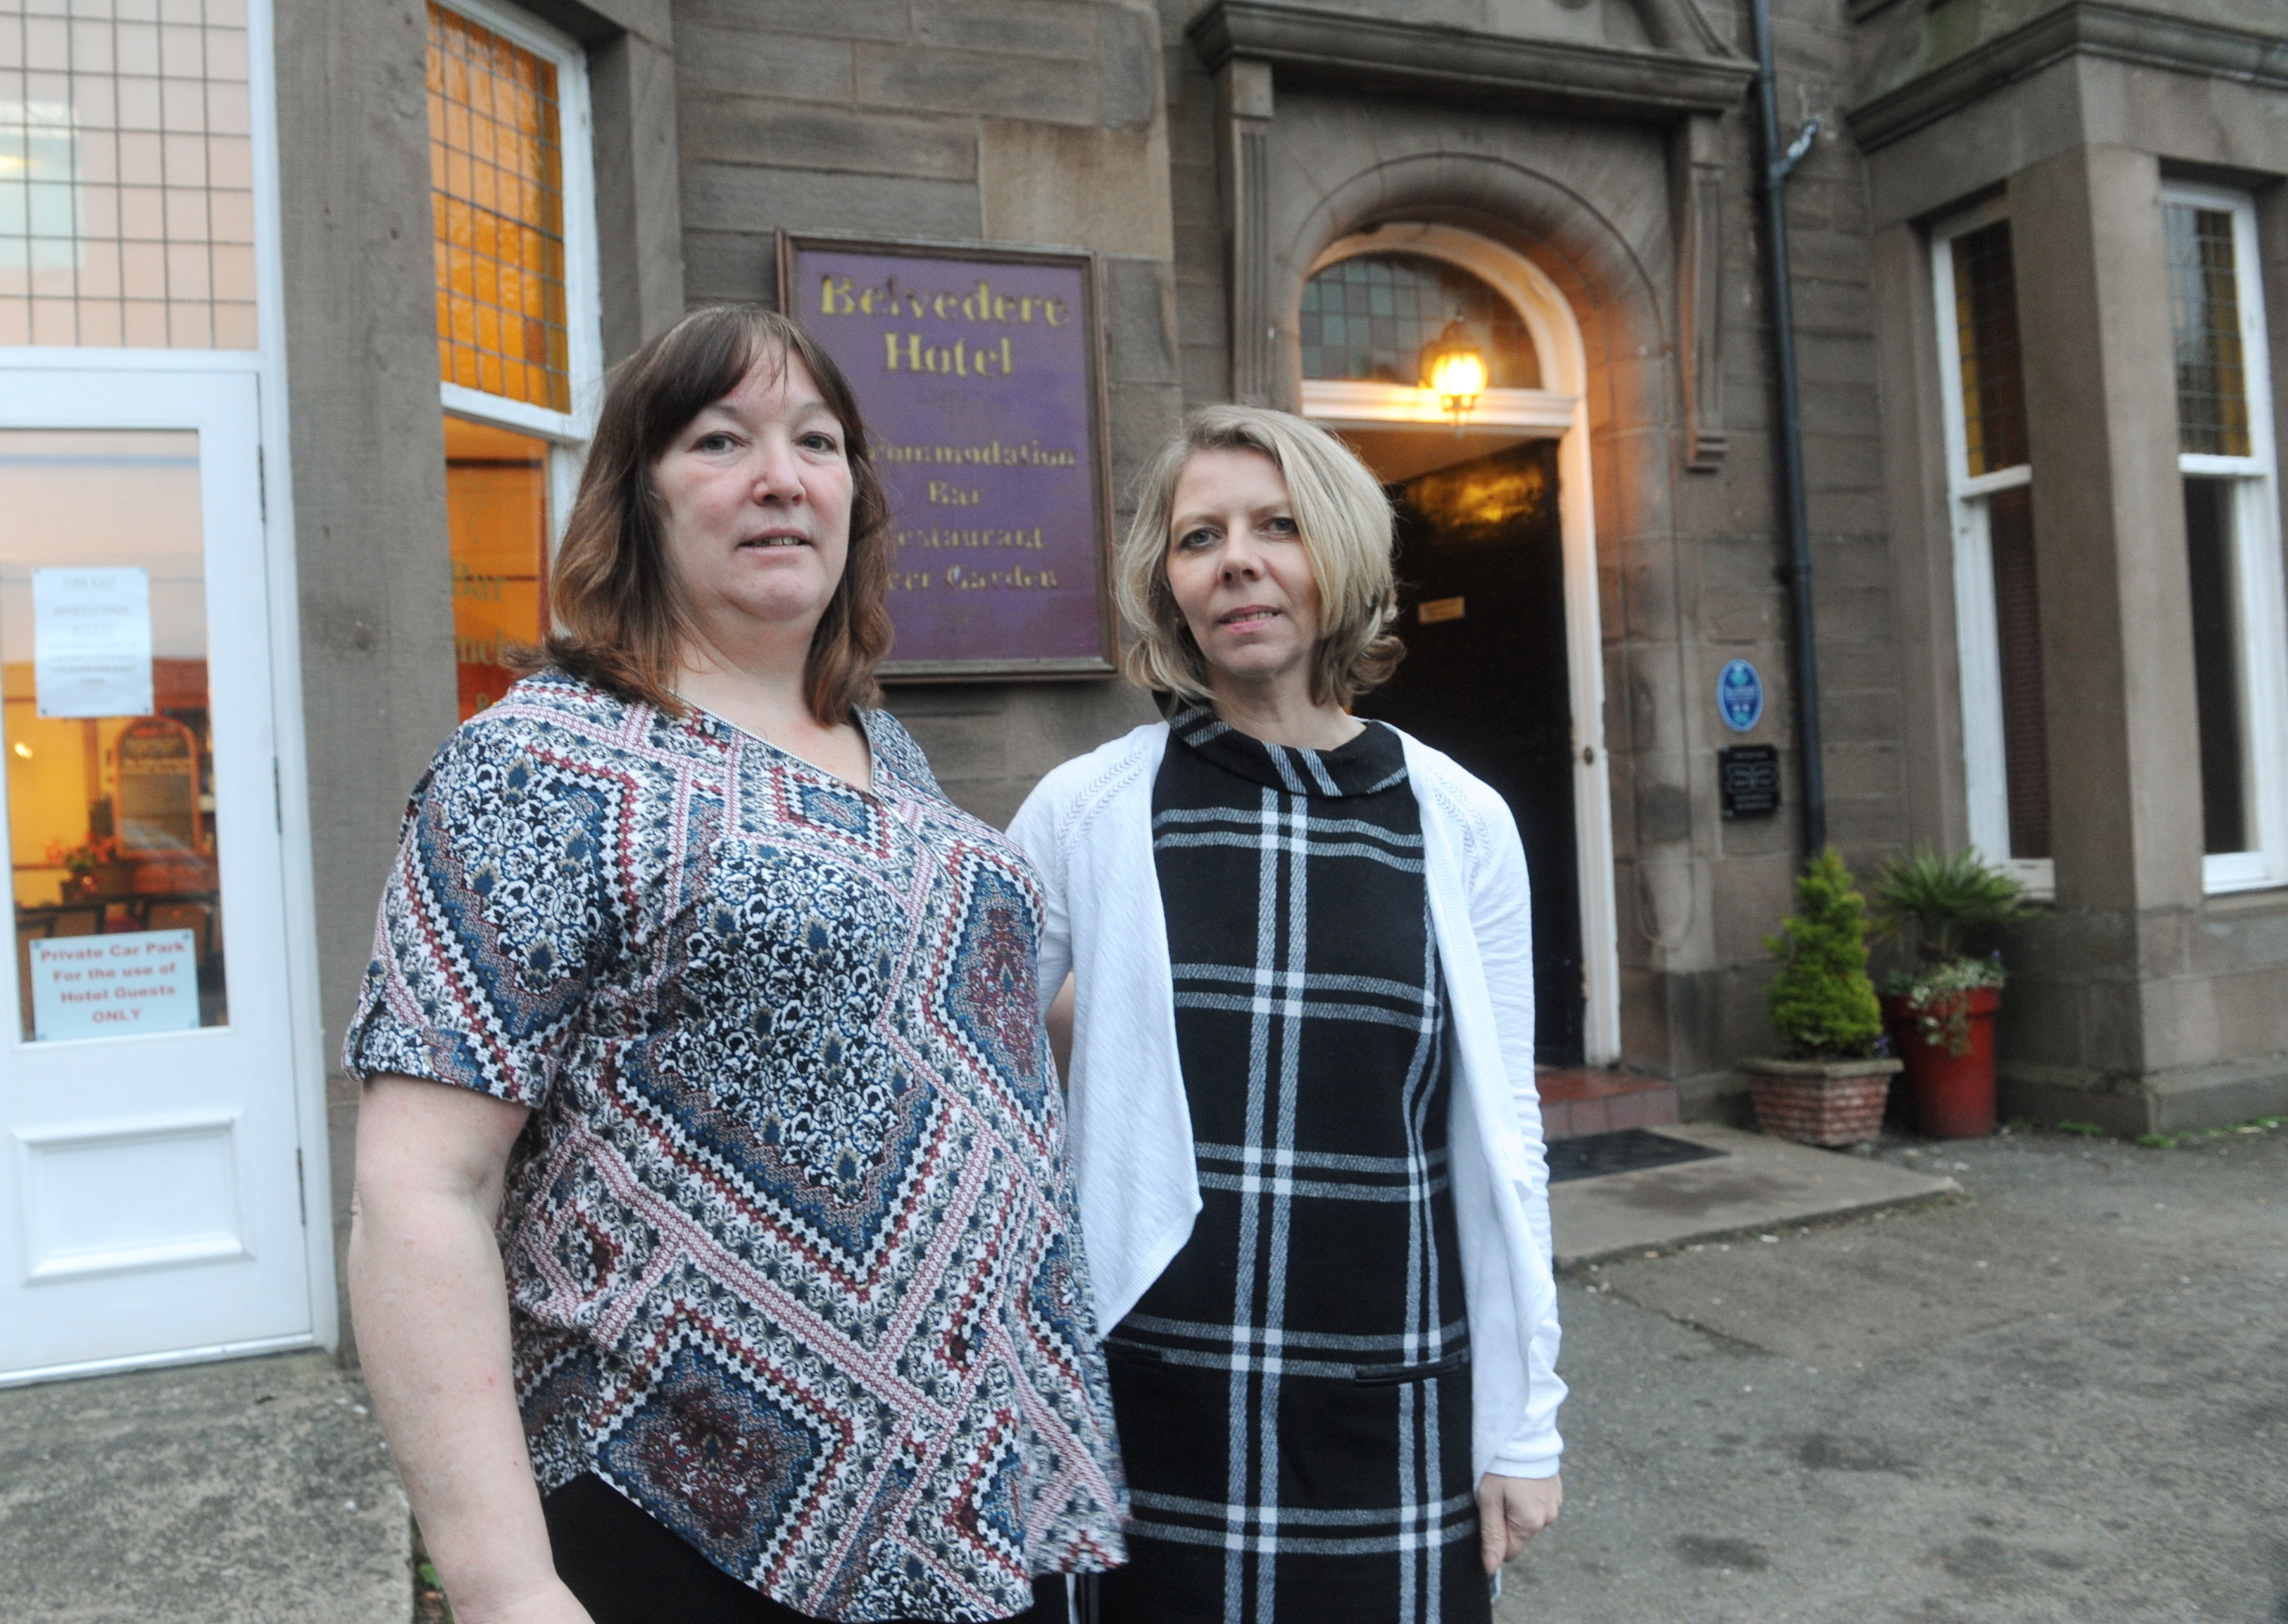 Shelia Haworth, owner of The Belvedere Hotel, left, and Michelle Ward,  owner of The Royal Hotel